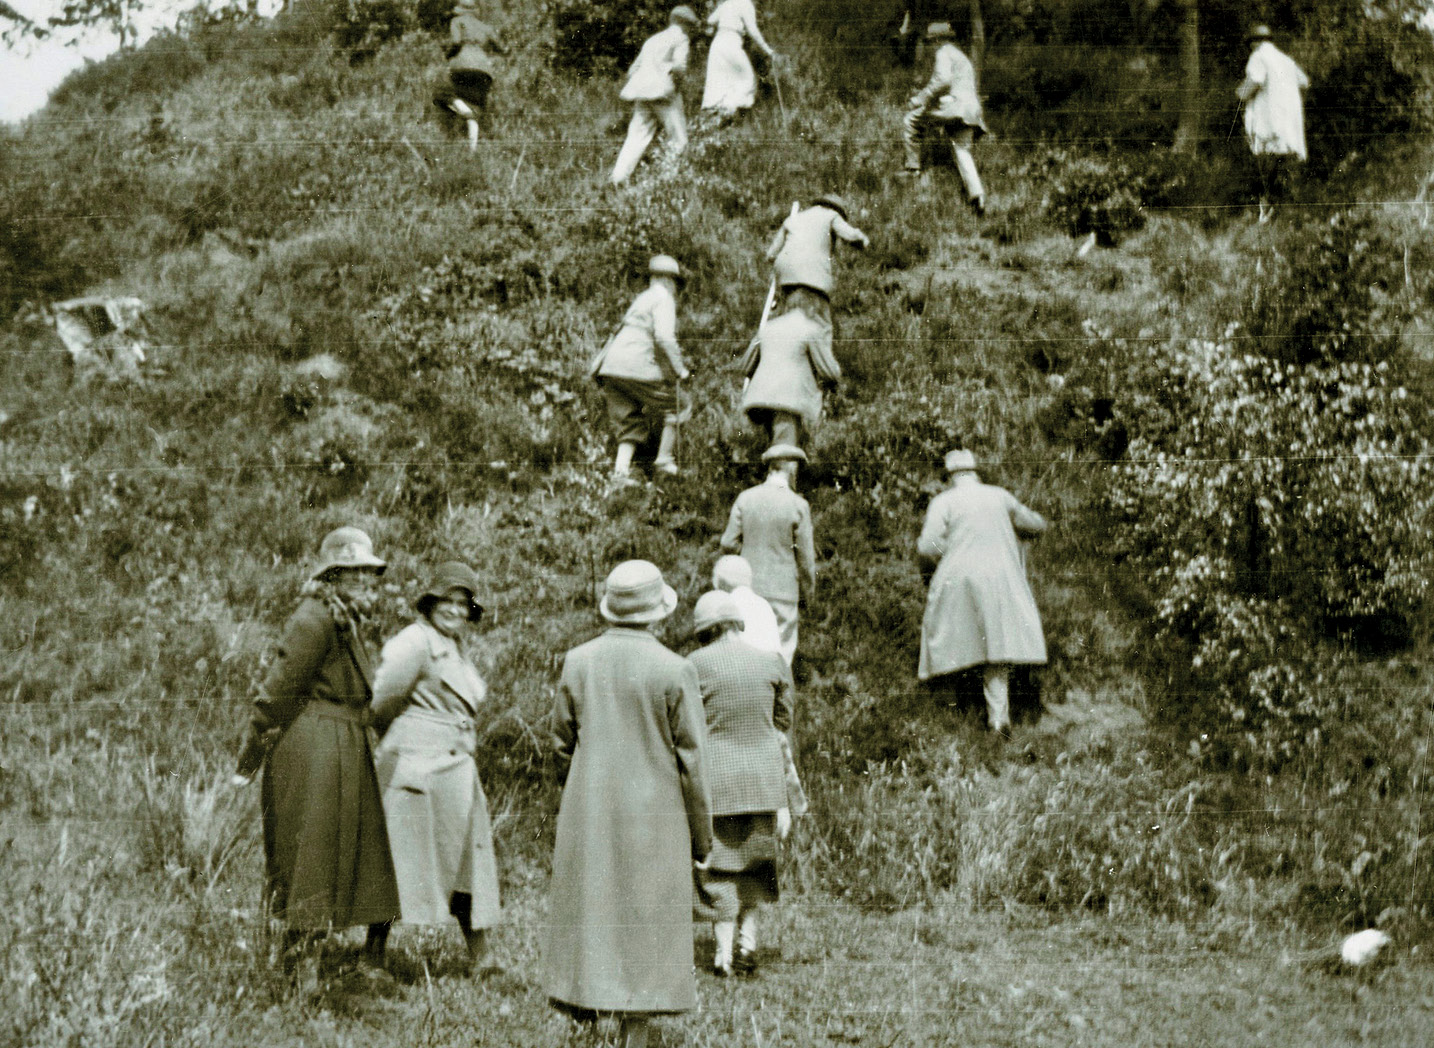 below Ley-line enthusiasts members of the Long Straight Track Club ascended the motte at Ponthendre in 1933 to investigate Alfred Watkins' claim that the mound was a prehistoric road surveyor's sighting platform.